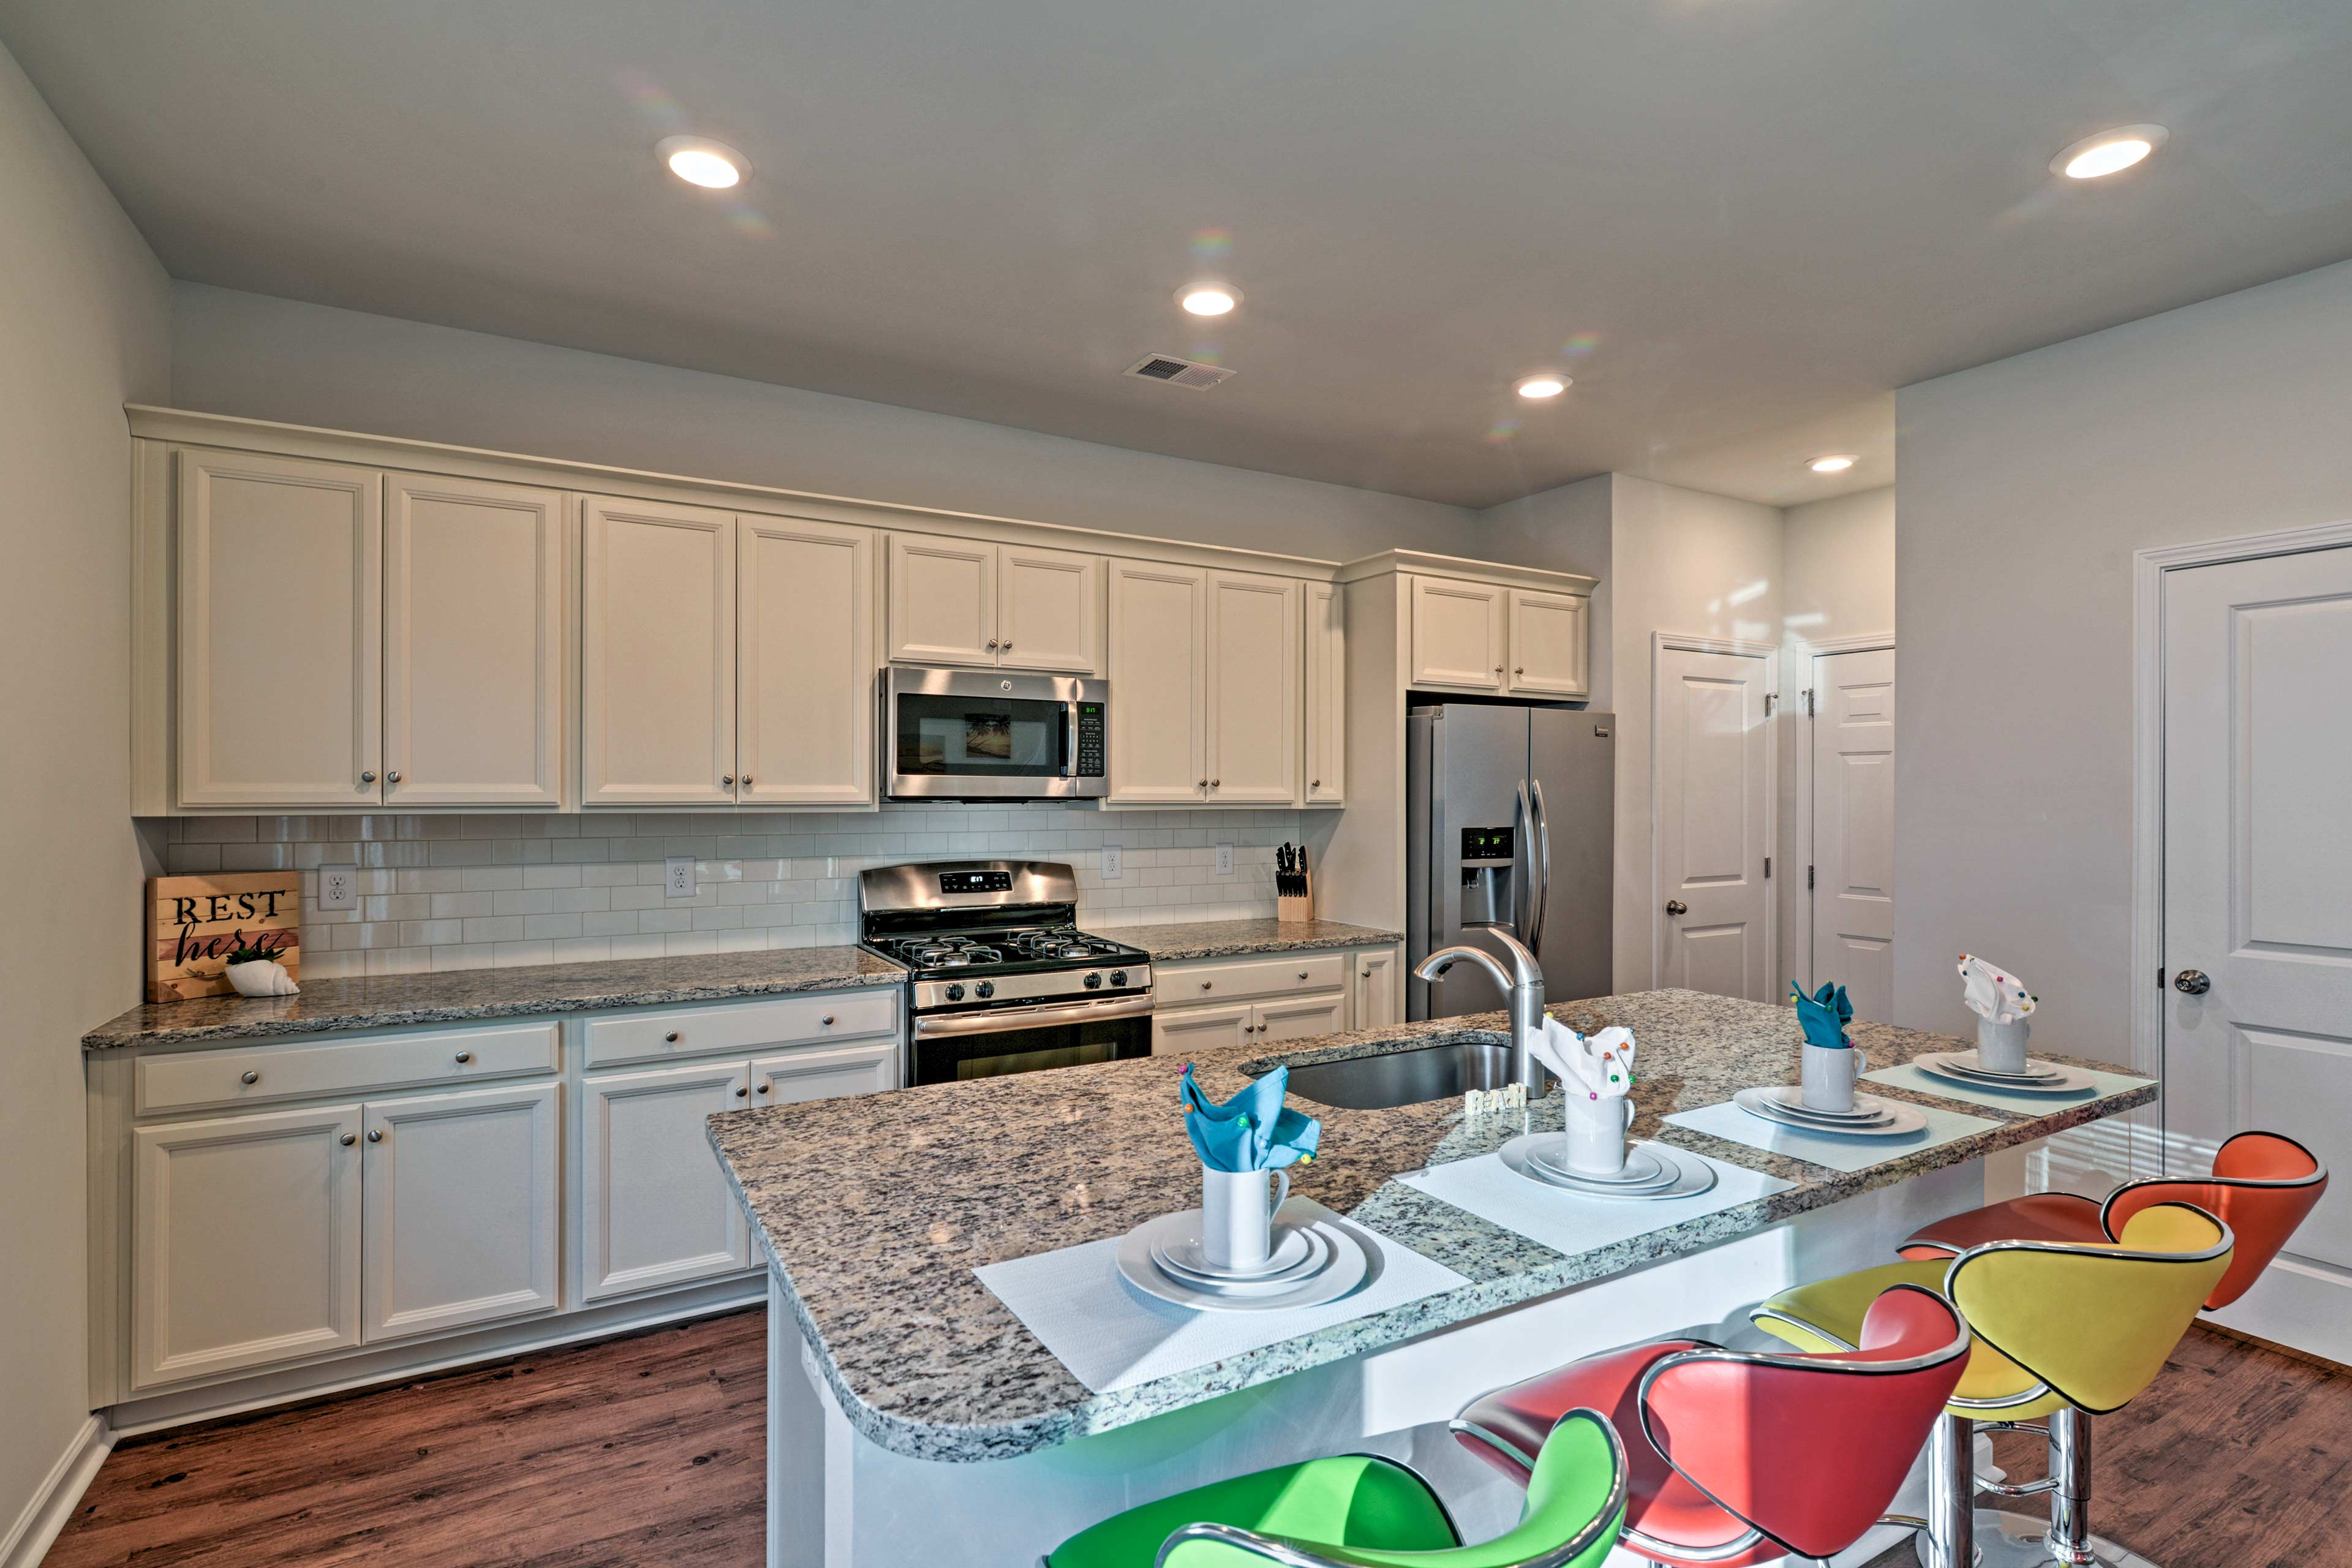 This home boasts 3 bedrooms, 2.5 bathrooms, and sleeping for up to 8 guests.